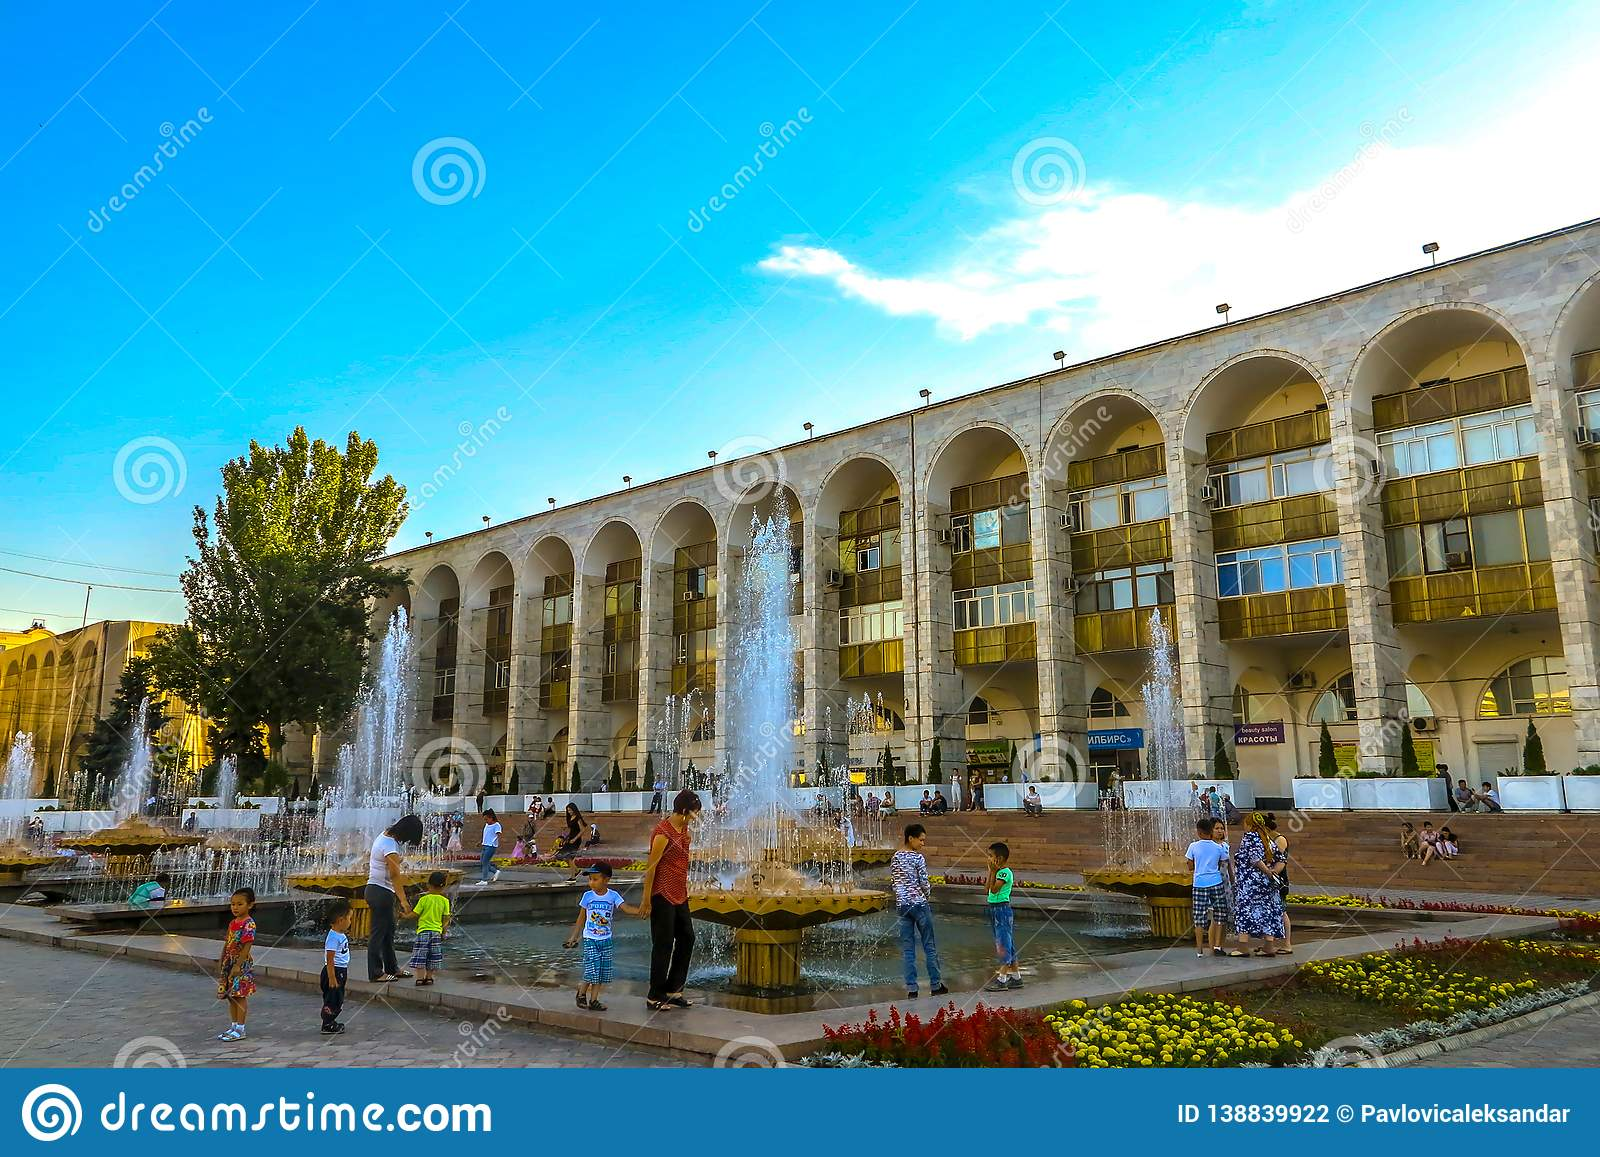 Bishkek Ala Too Square 02